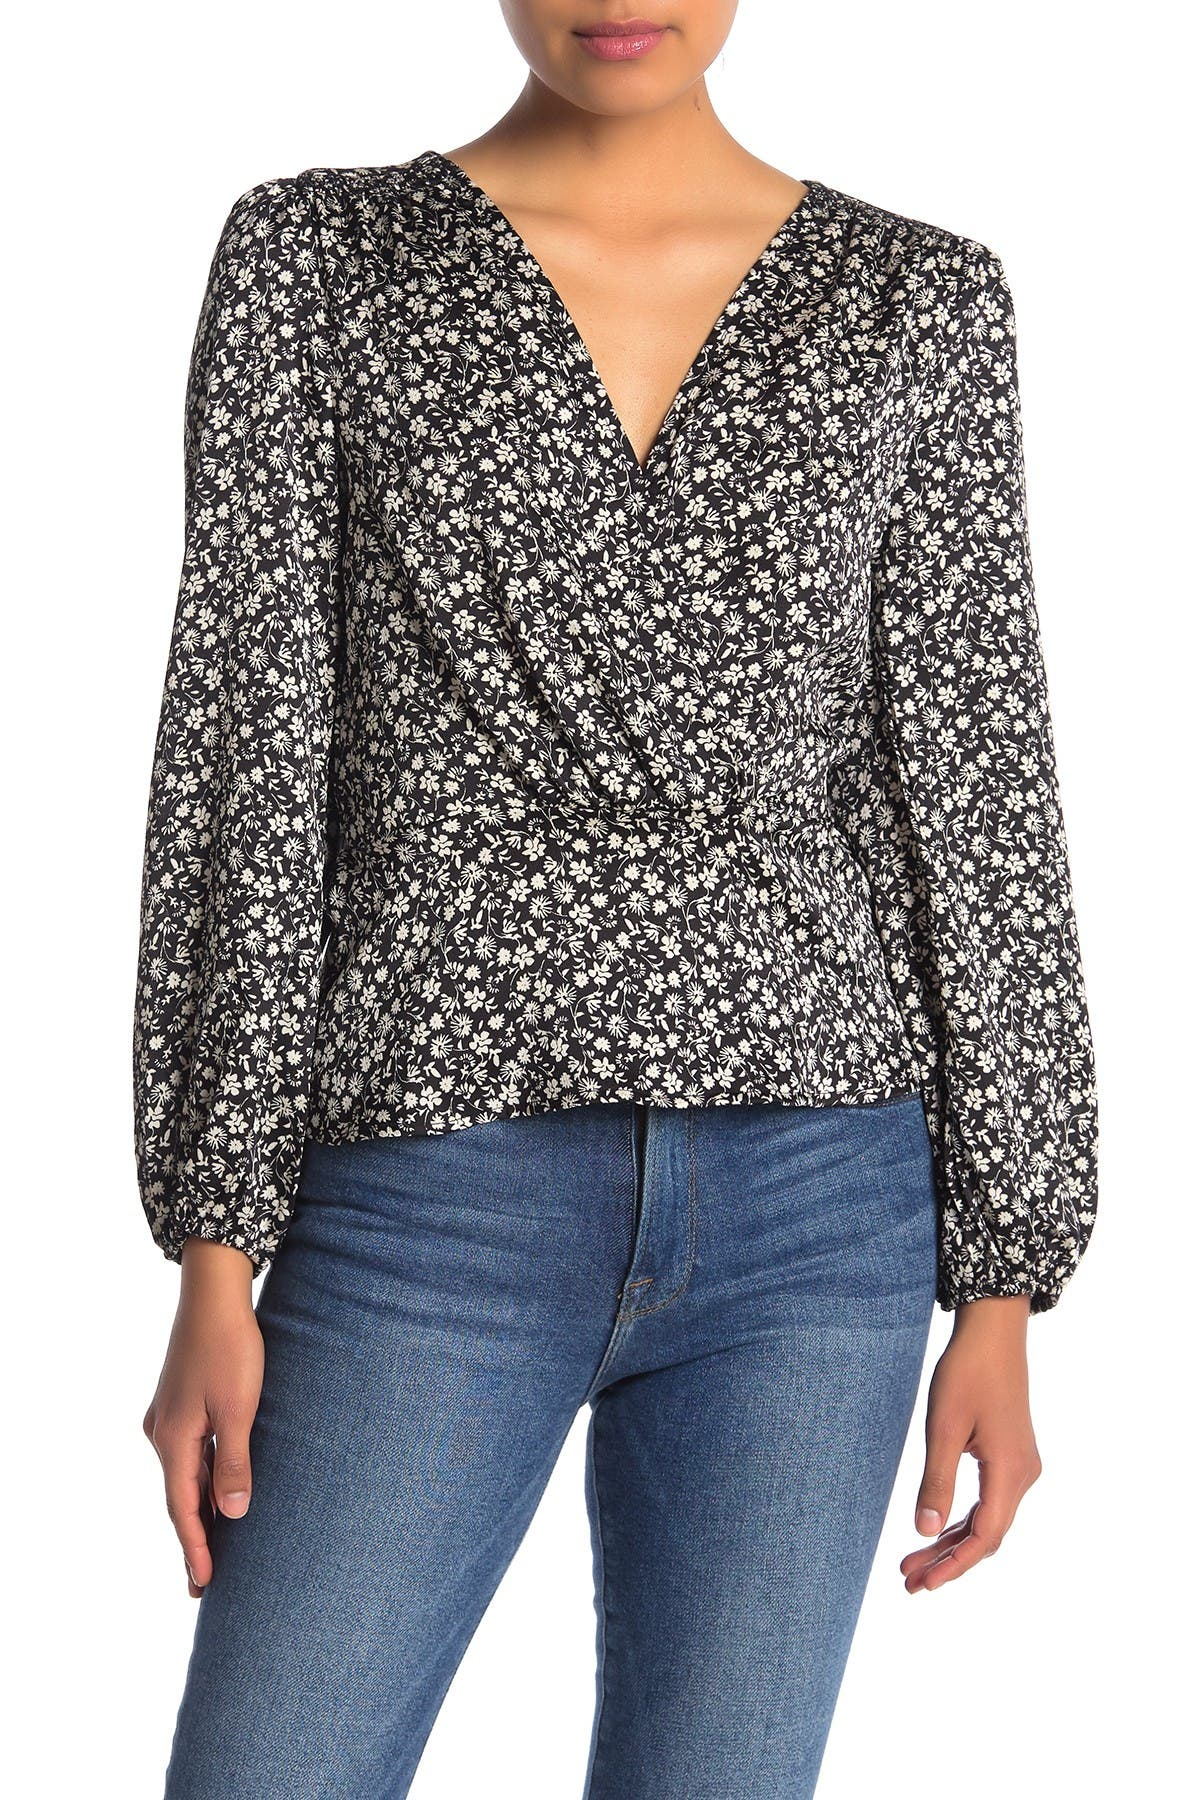 Image of Lush Floral Print Peplum Blouse